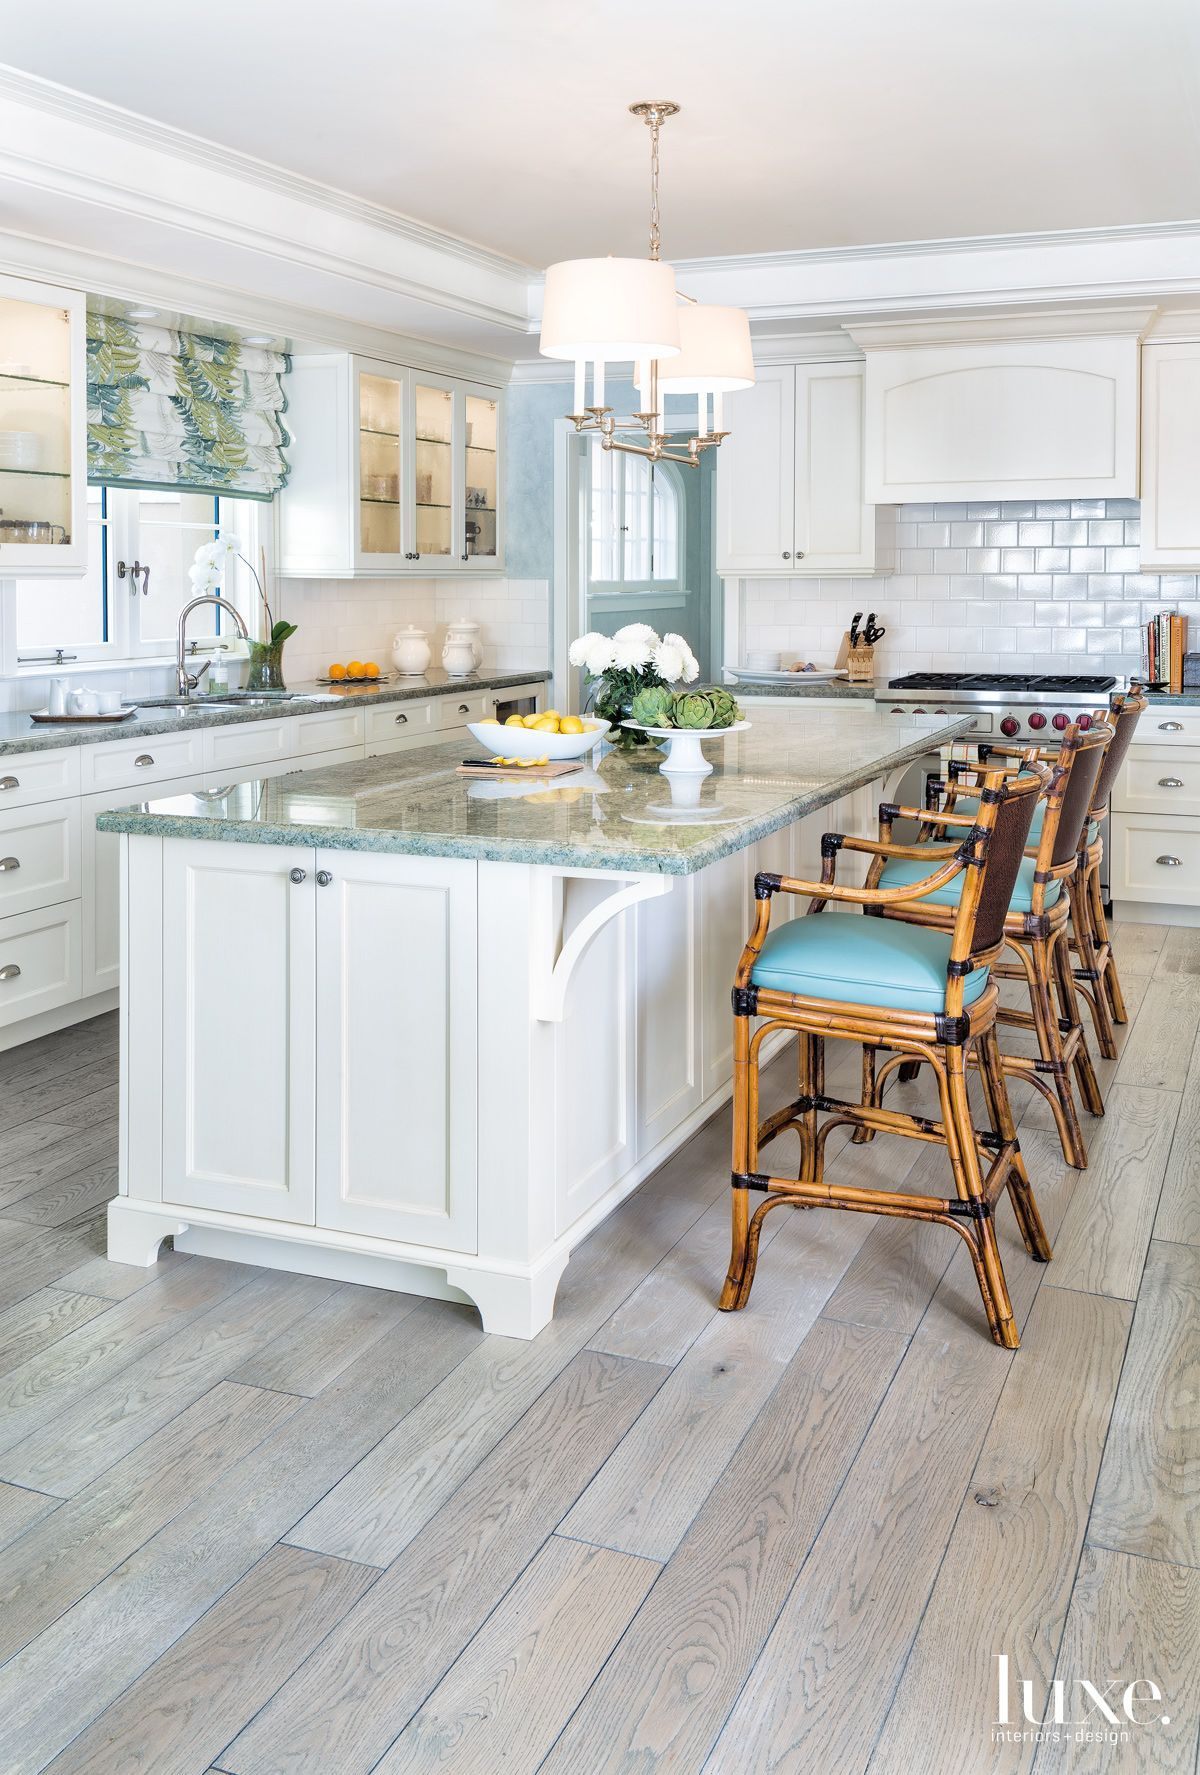 Ferguson Kitchen Cabinets Coastal Kitchen | Allison Paladino Interior Design | Home